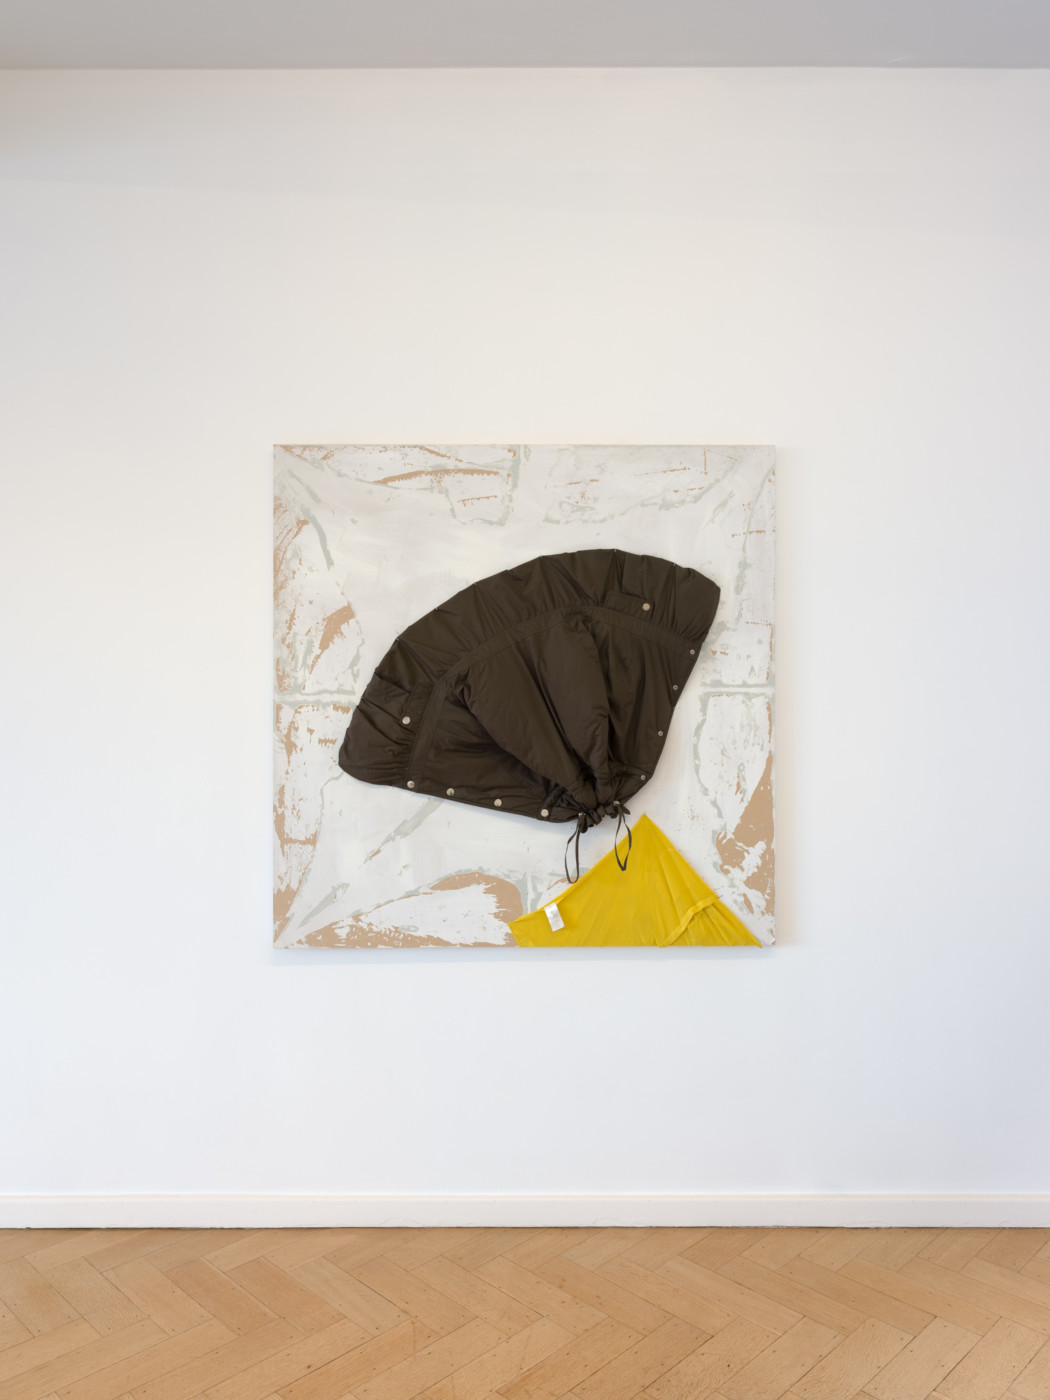 KEITH FARQUHAR  Just Eat,  2021 Found clothes on found wood 120 x 120 x 12 cm / 47 1/4 x 47 1/4 x 4 3/4 in   - High Art Gallery Paris